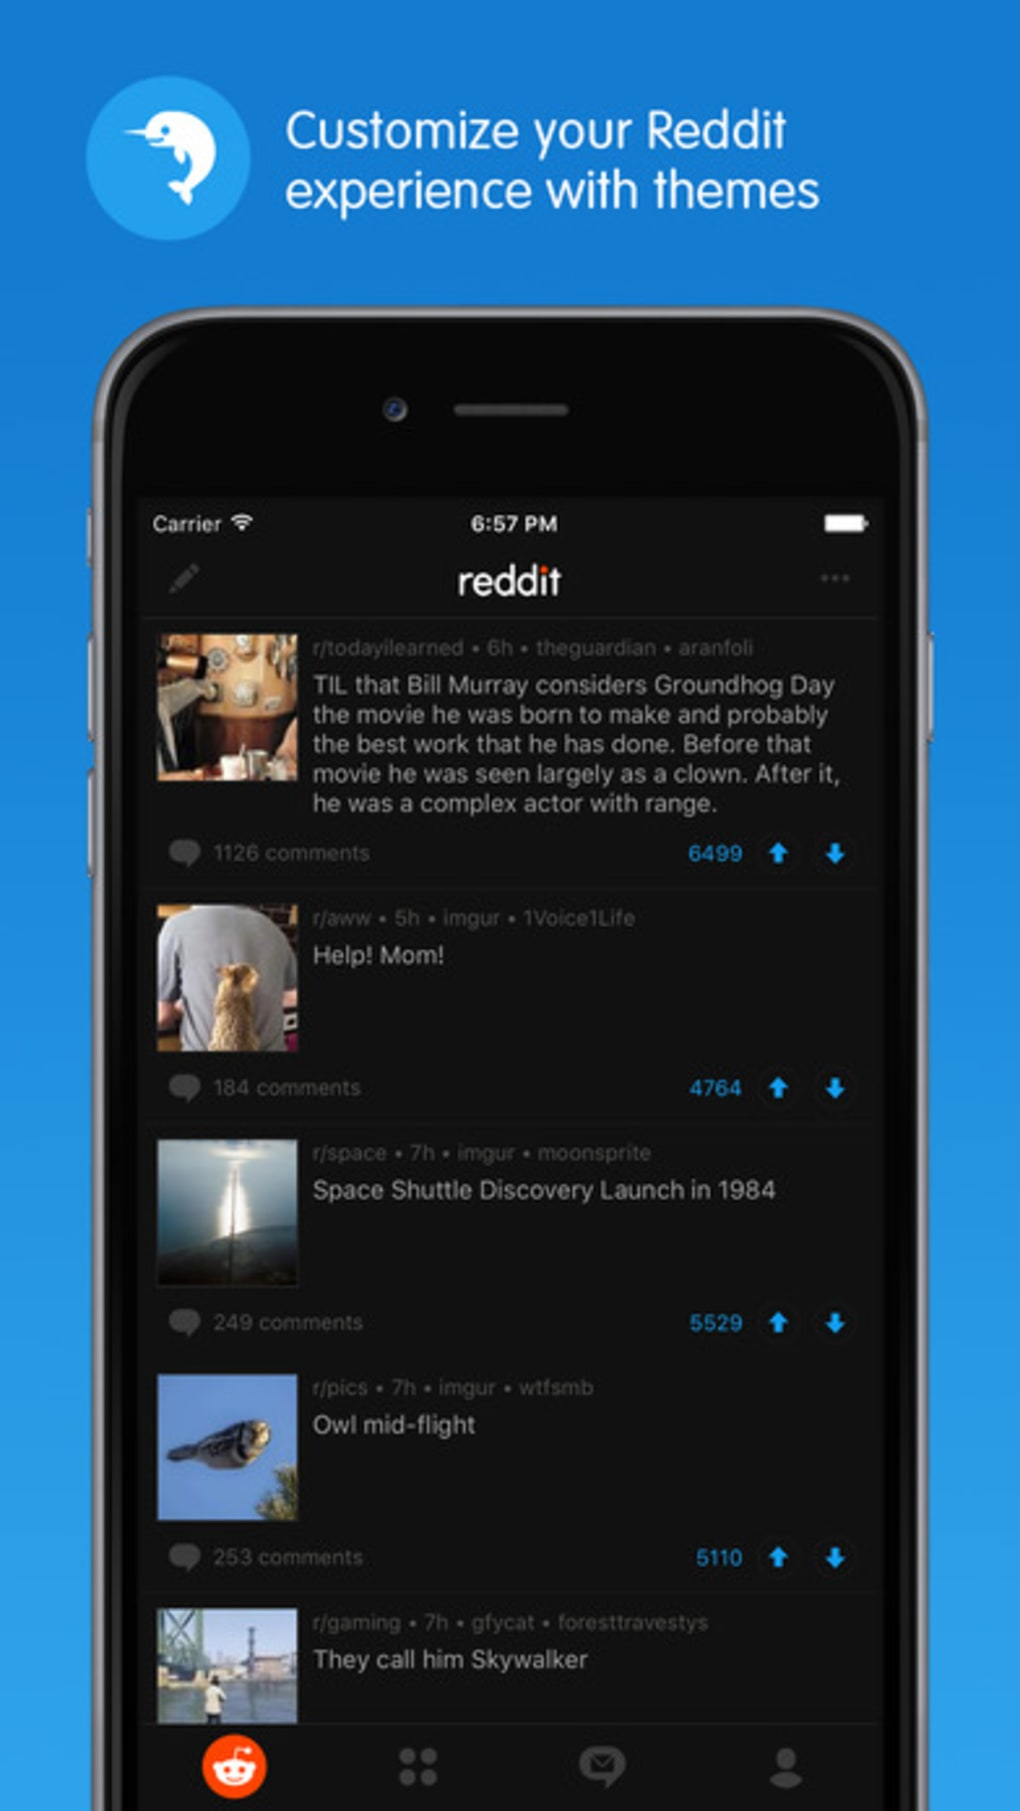 Reddit: The Official App for iPhone - Download